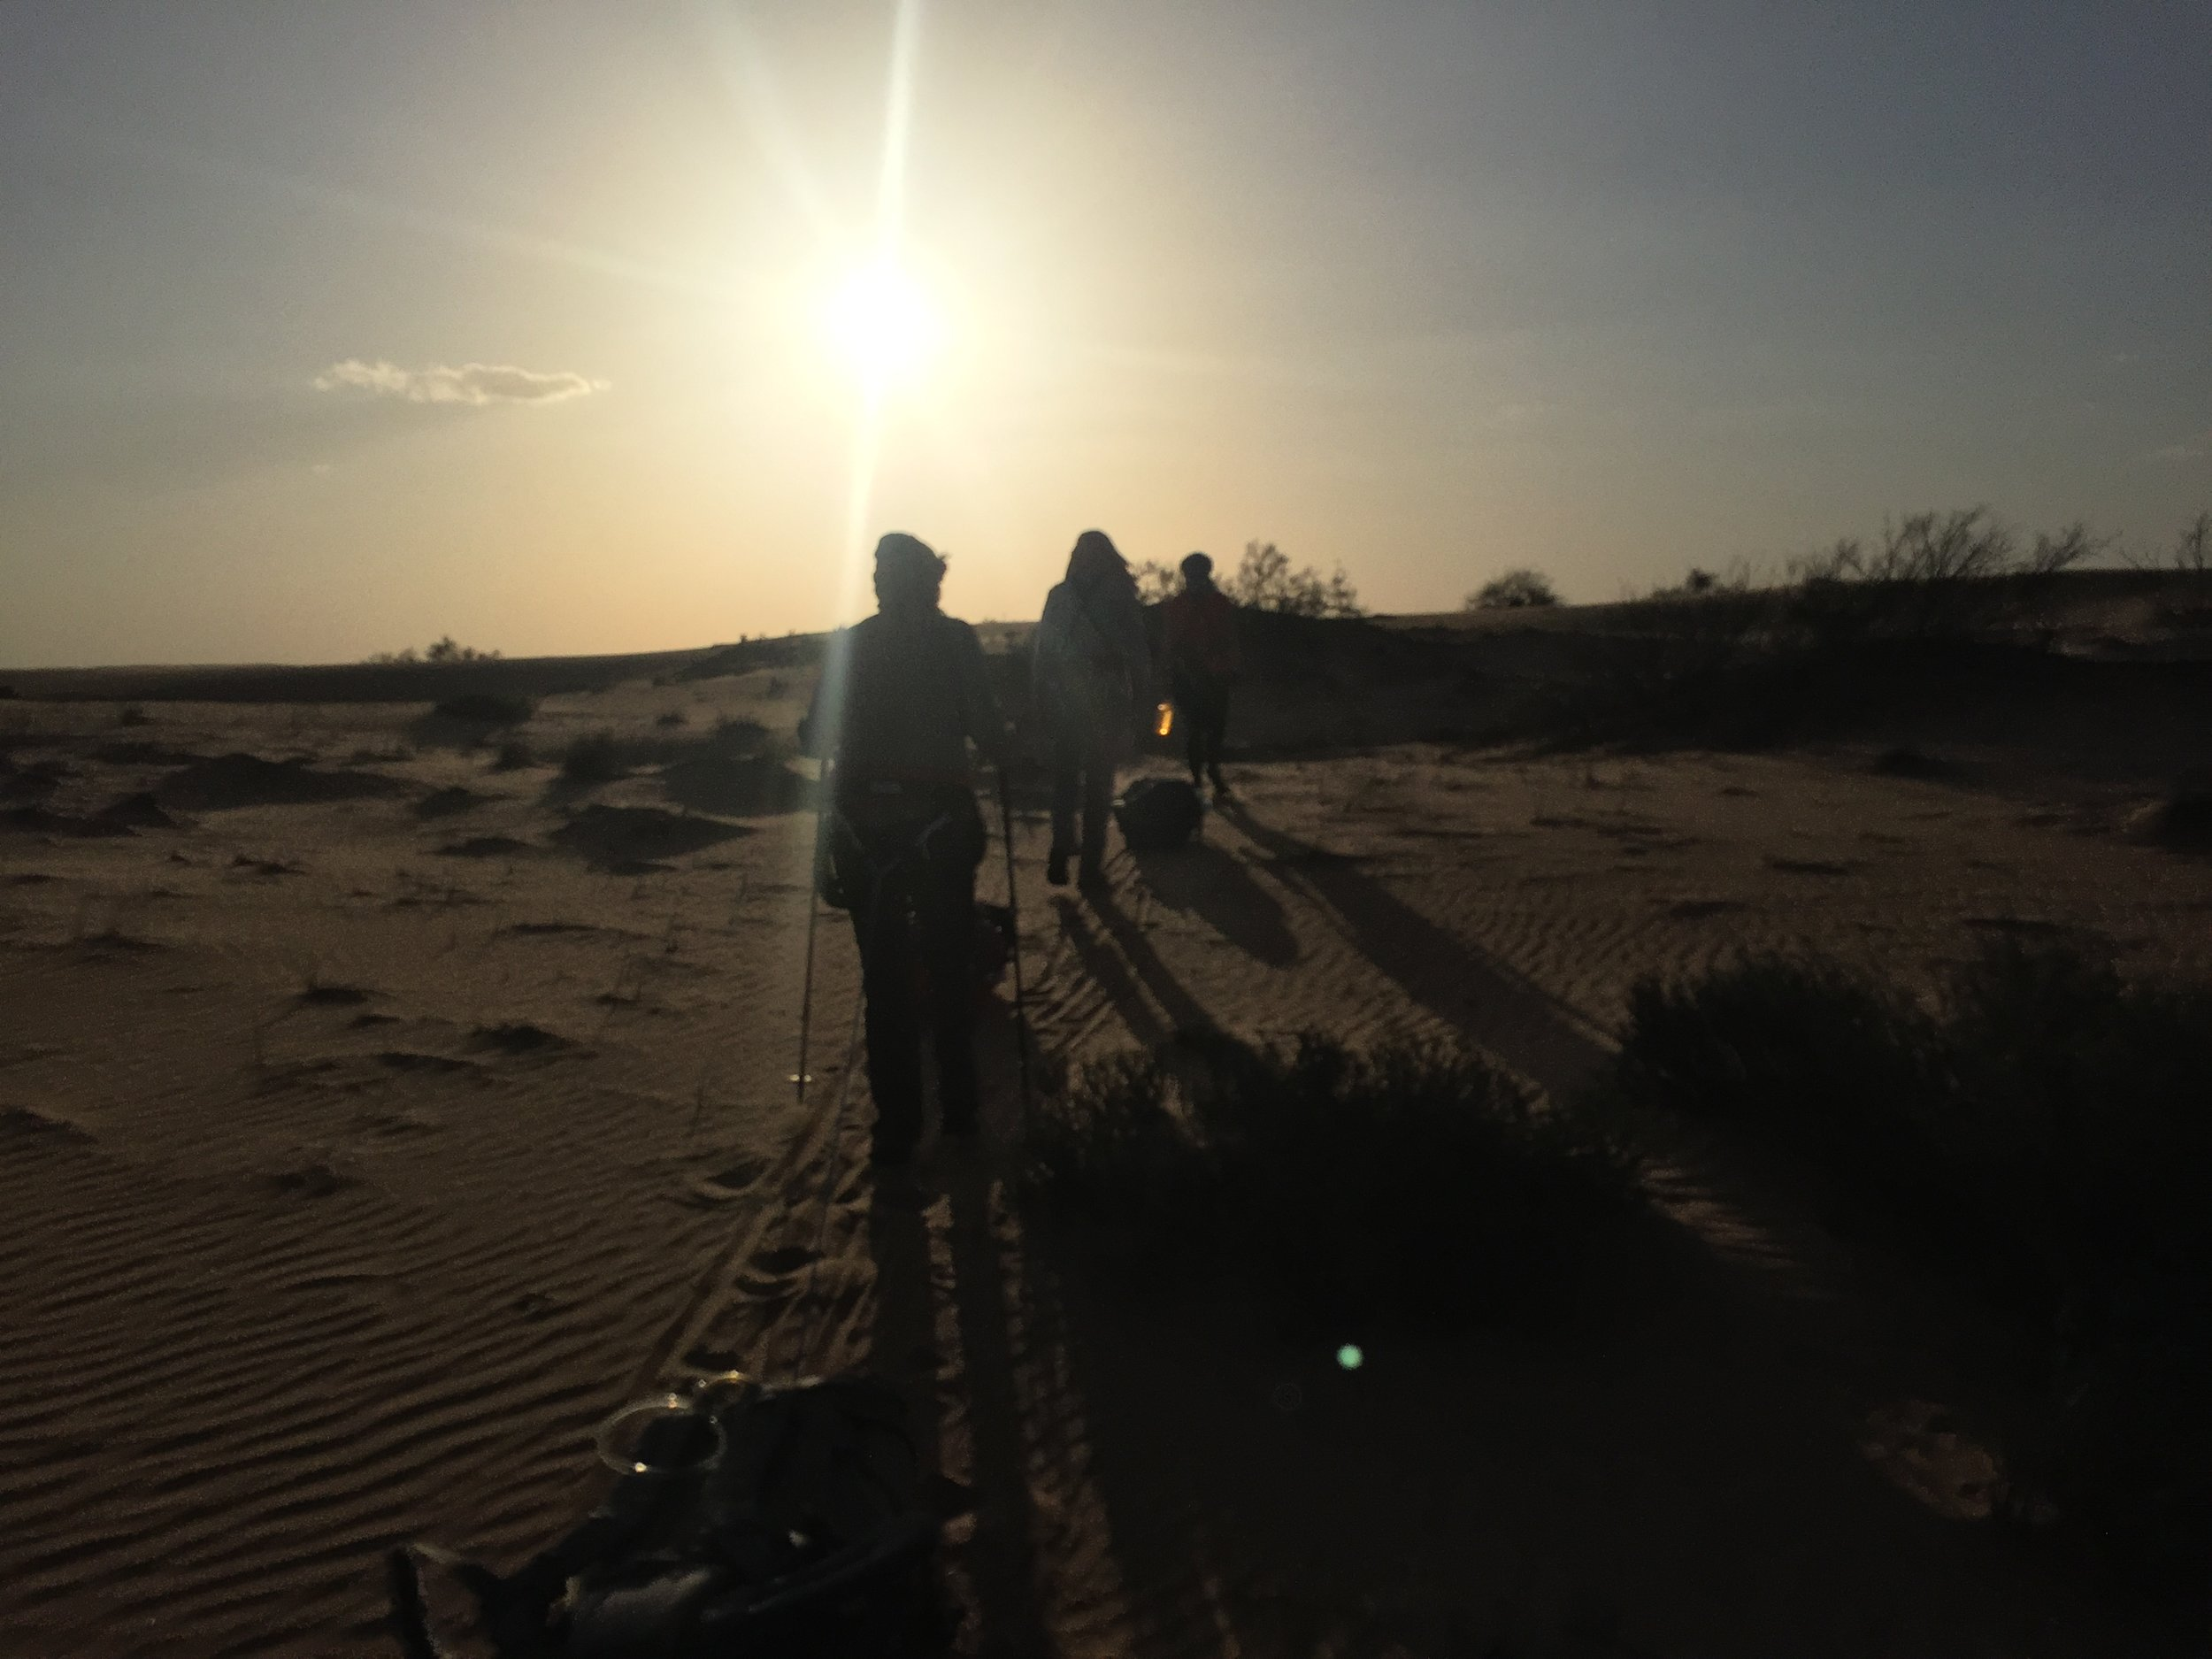 The first day taught us that travelling early and late was the only way to cope with the desert heat!